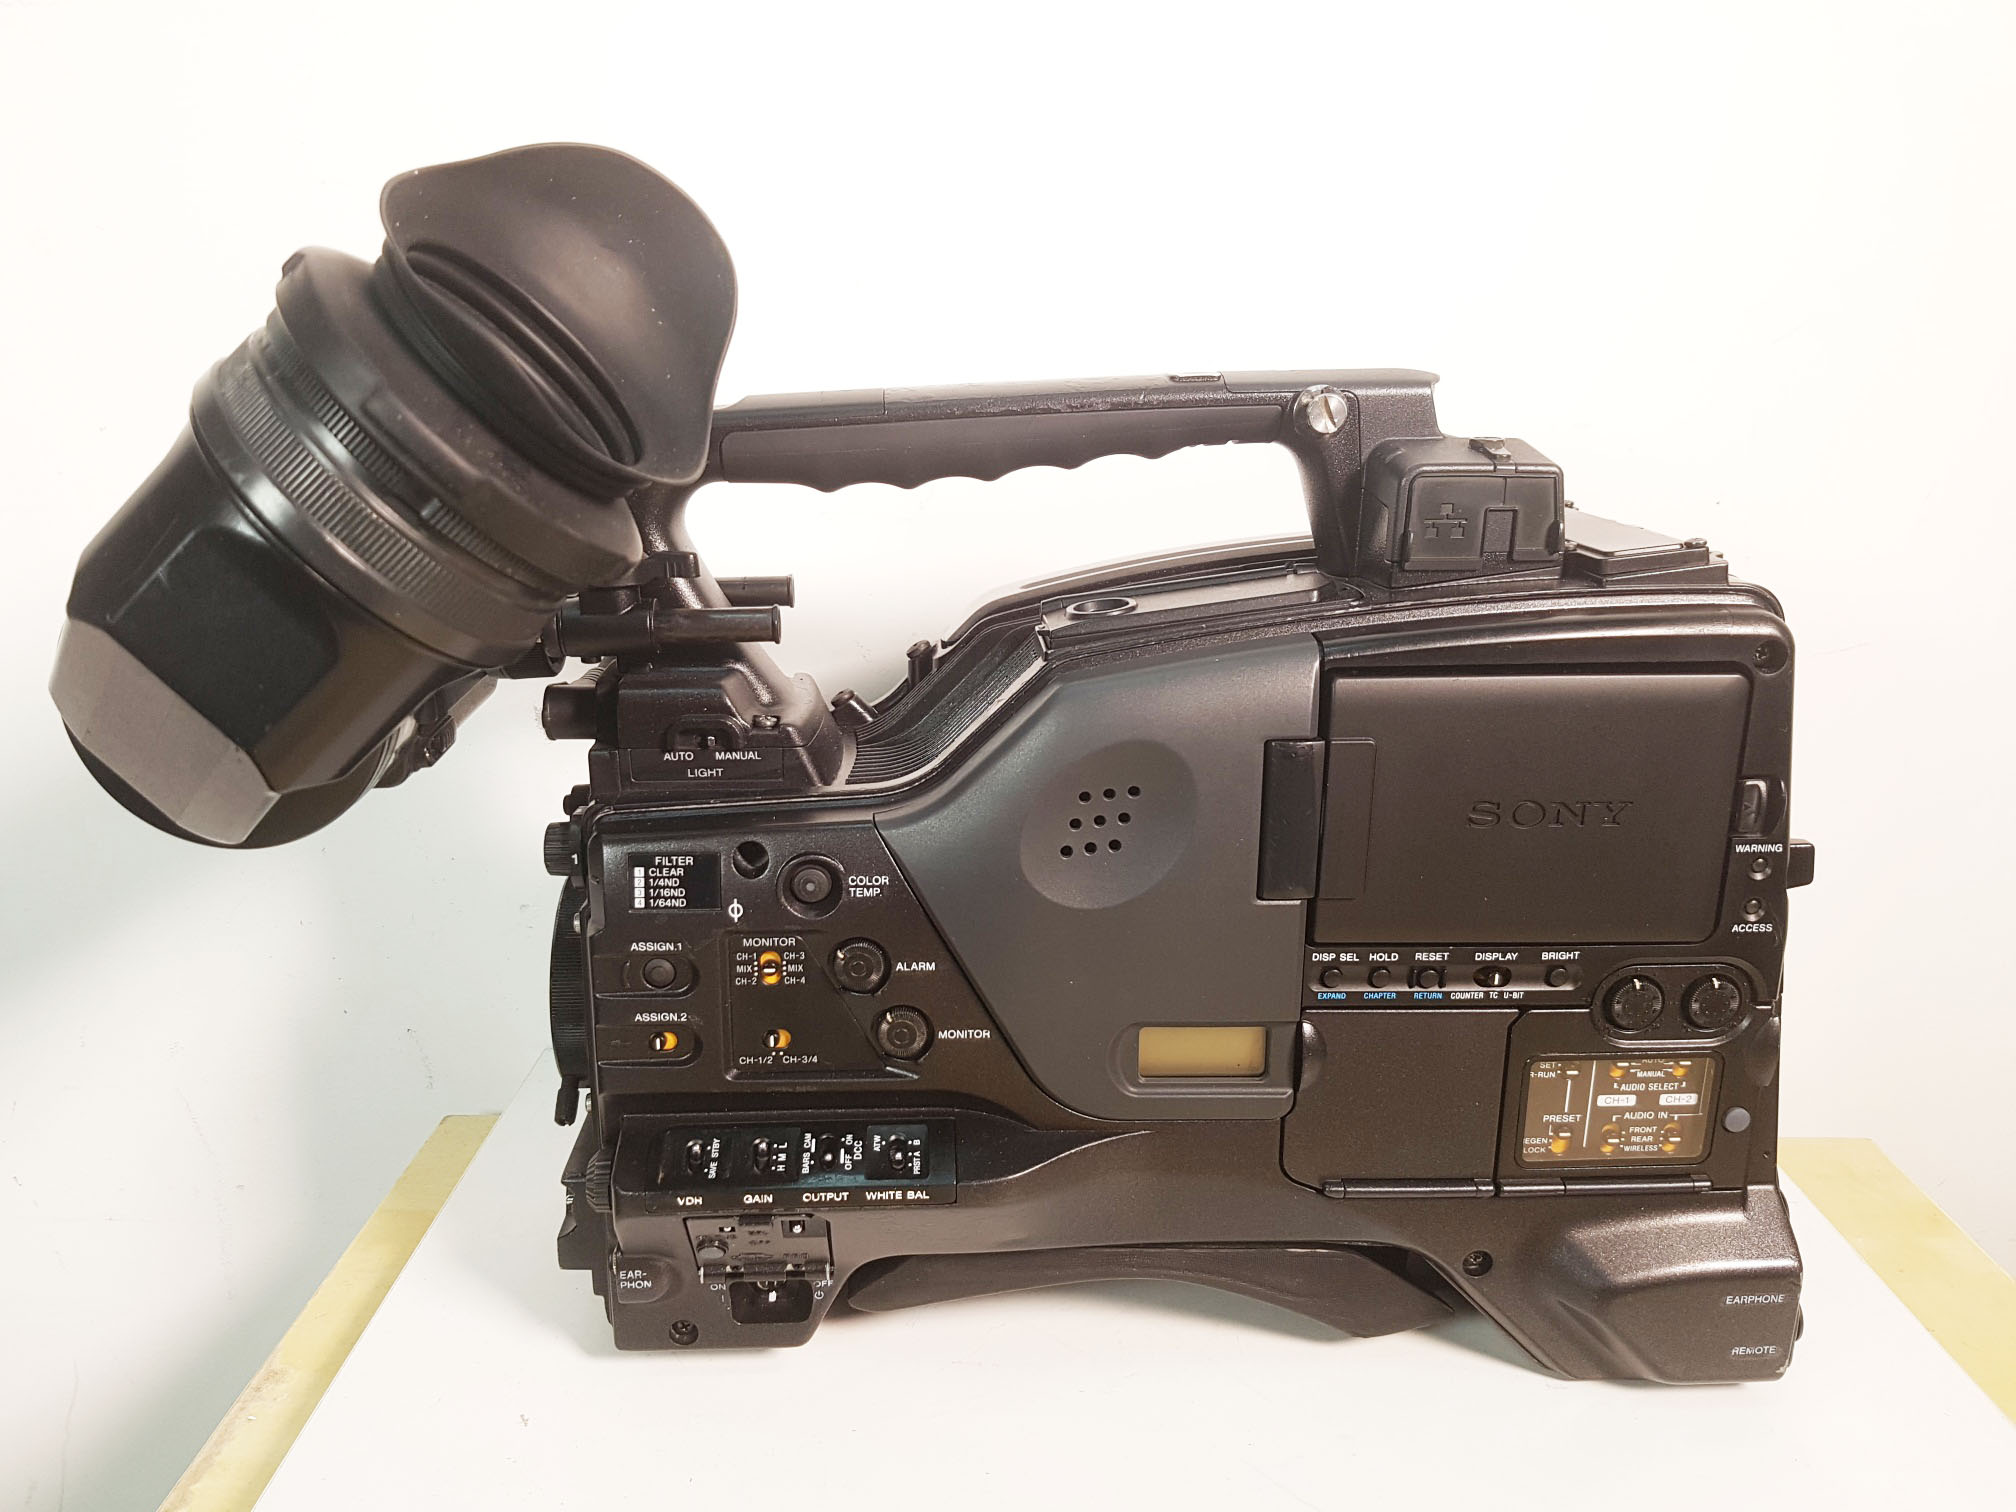 sony pdw 700 hdvf 200 xdcam hd camcorder with ope 3474 rh kitplus com sony pdw 700 user manual sony pdw 700 manual pdf